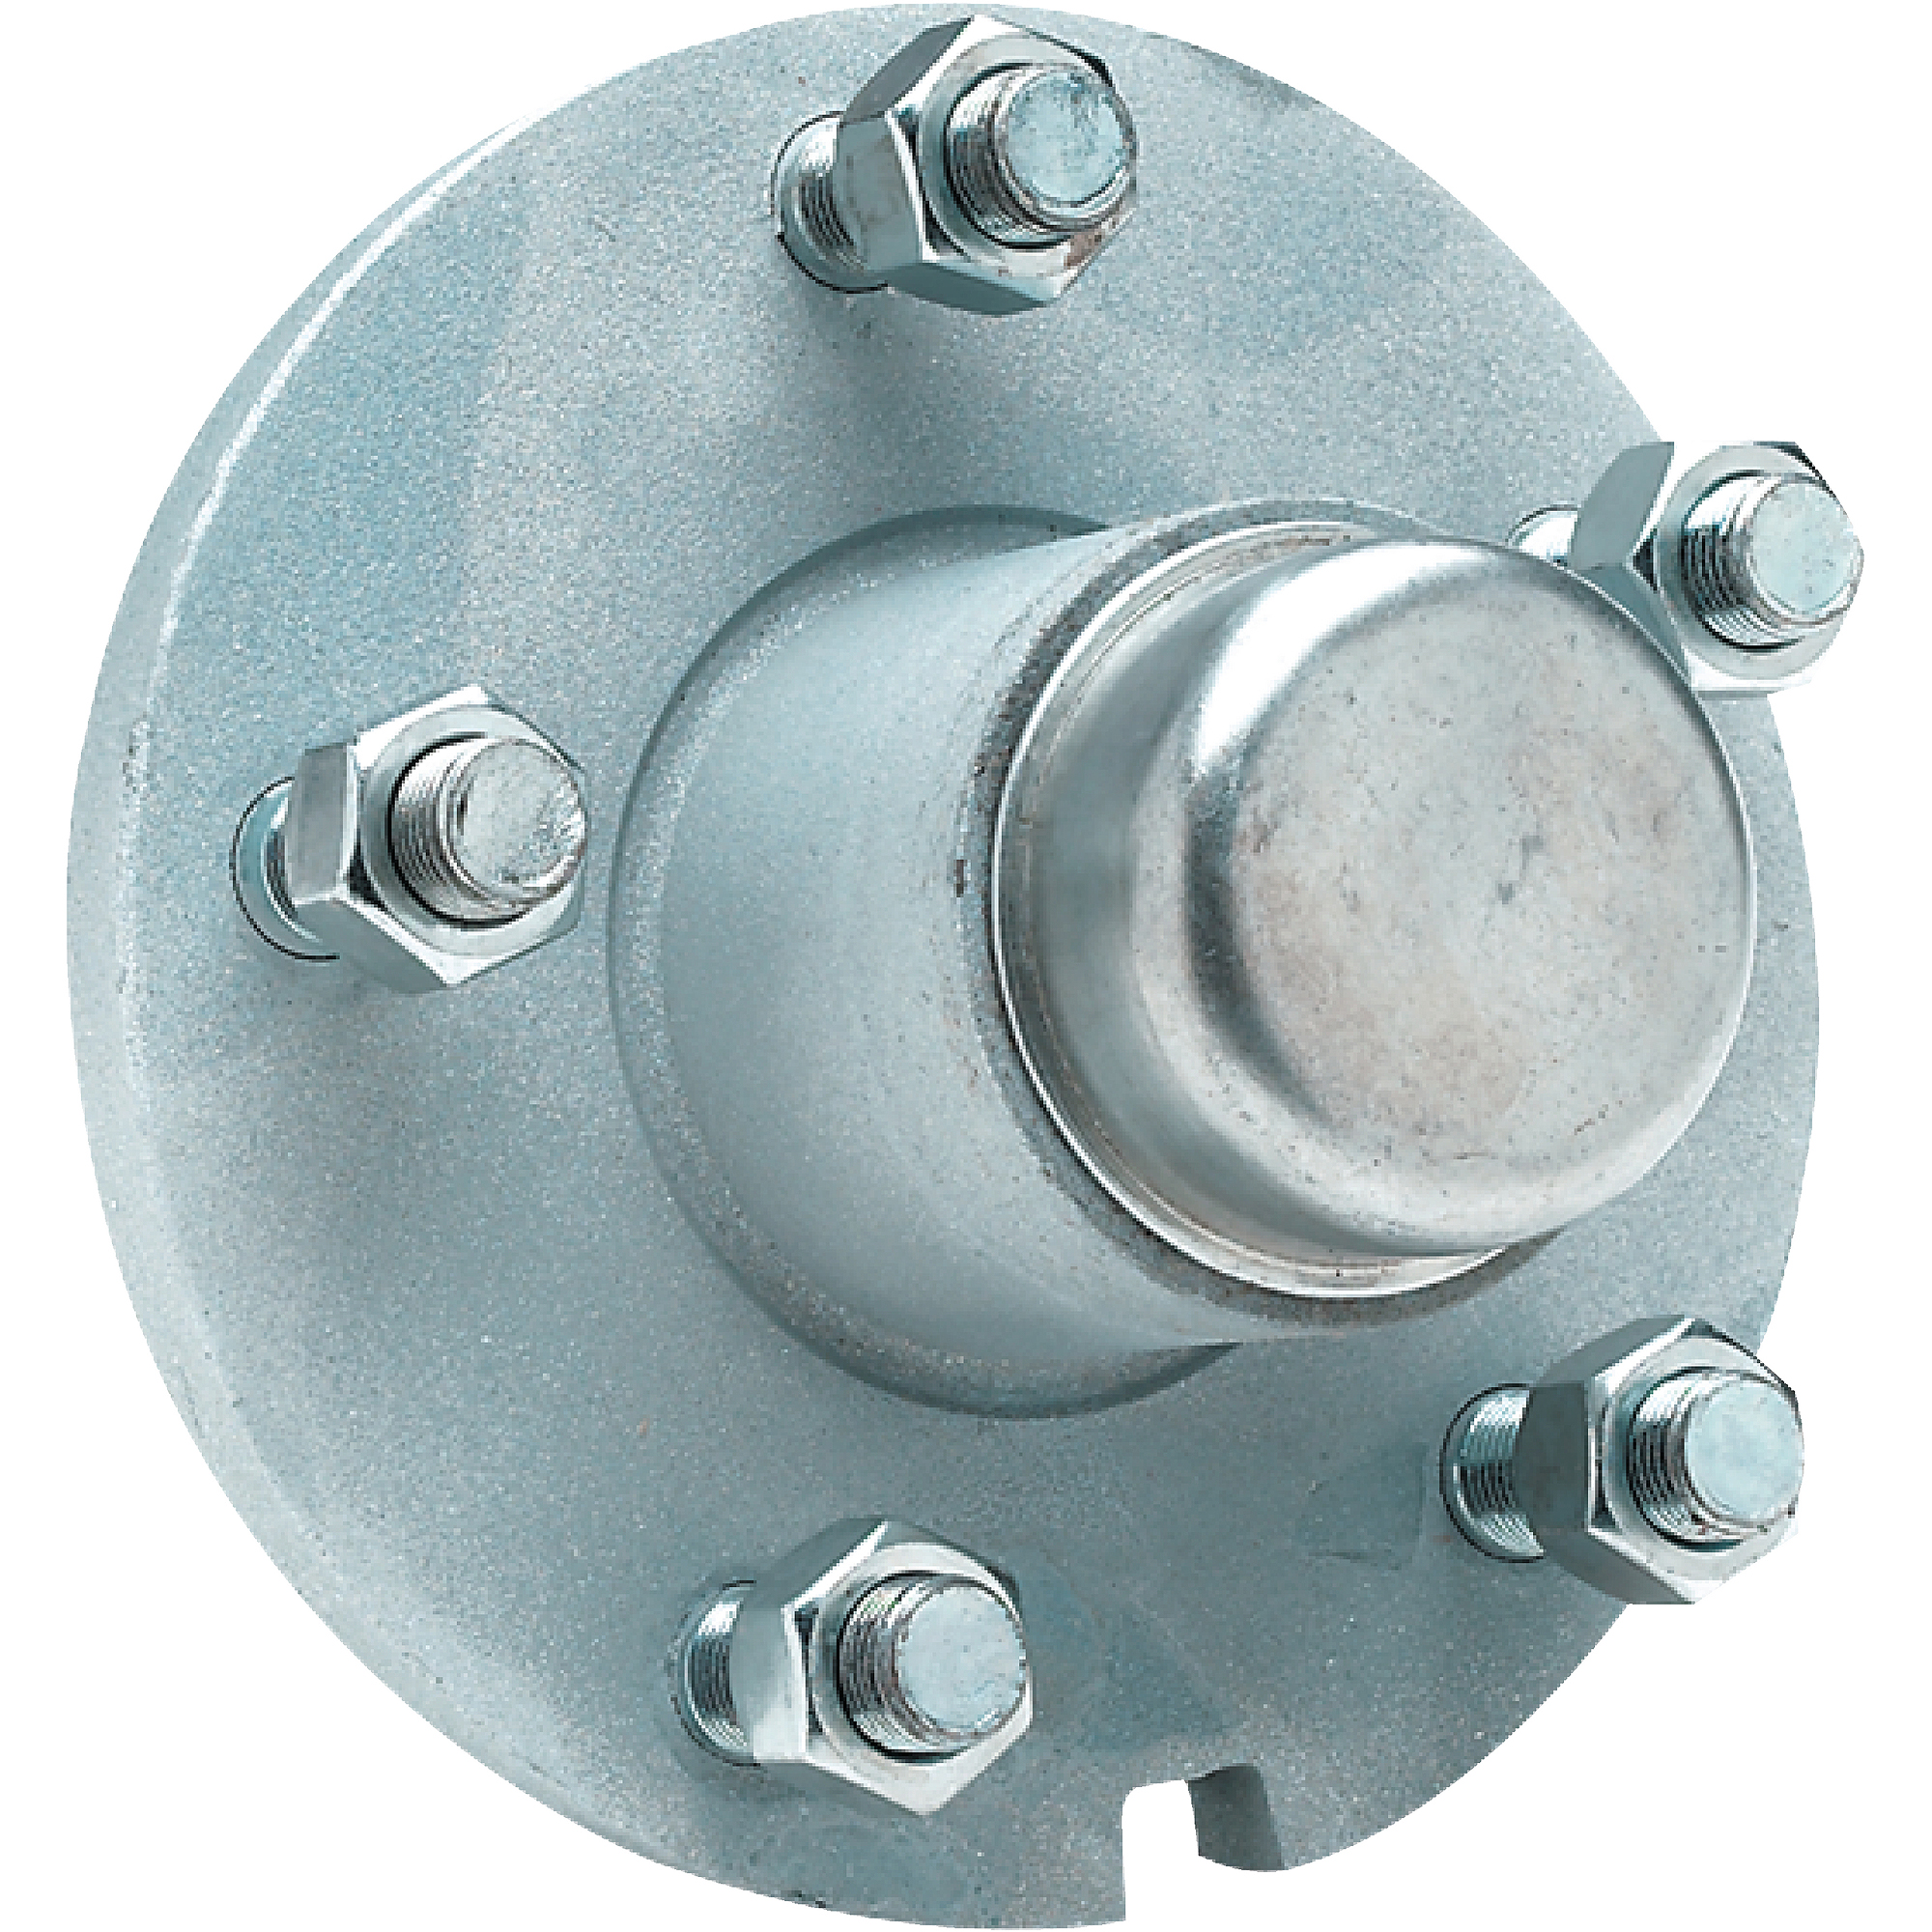 Seachoice Galvanized Trailer Wheel Hub by Seachoice Products